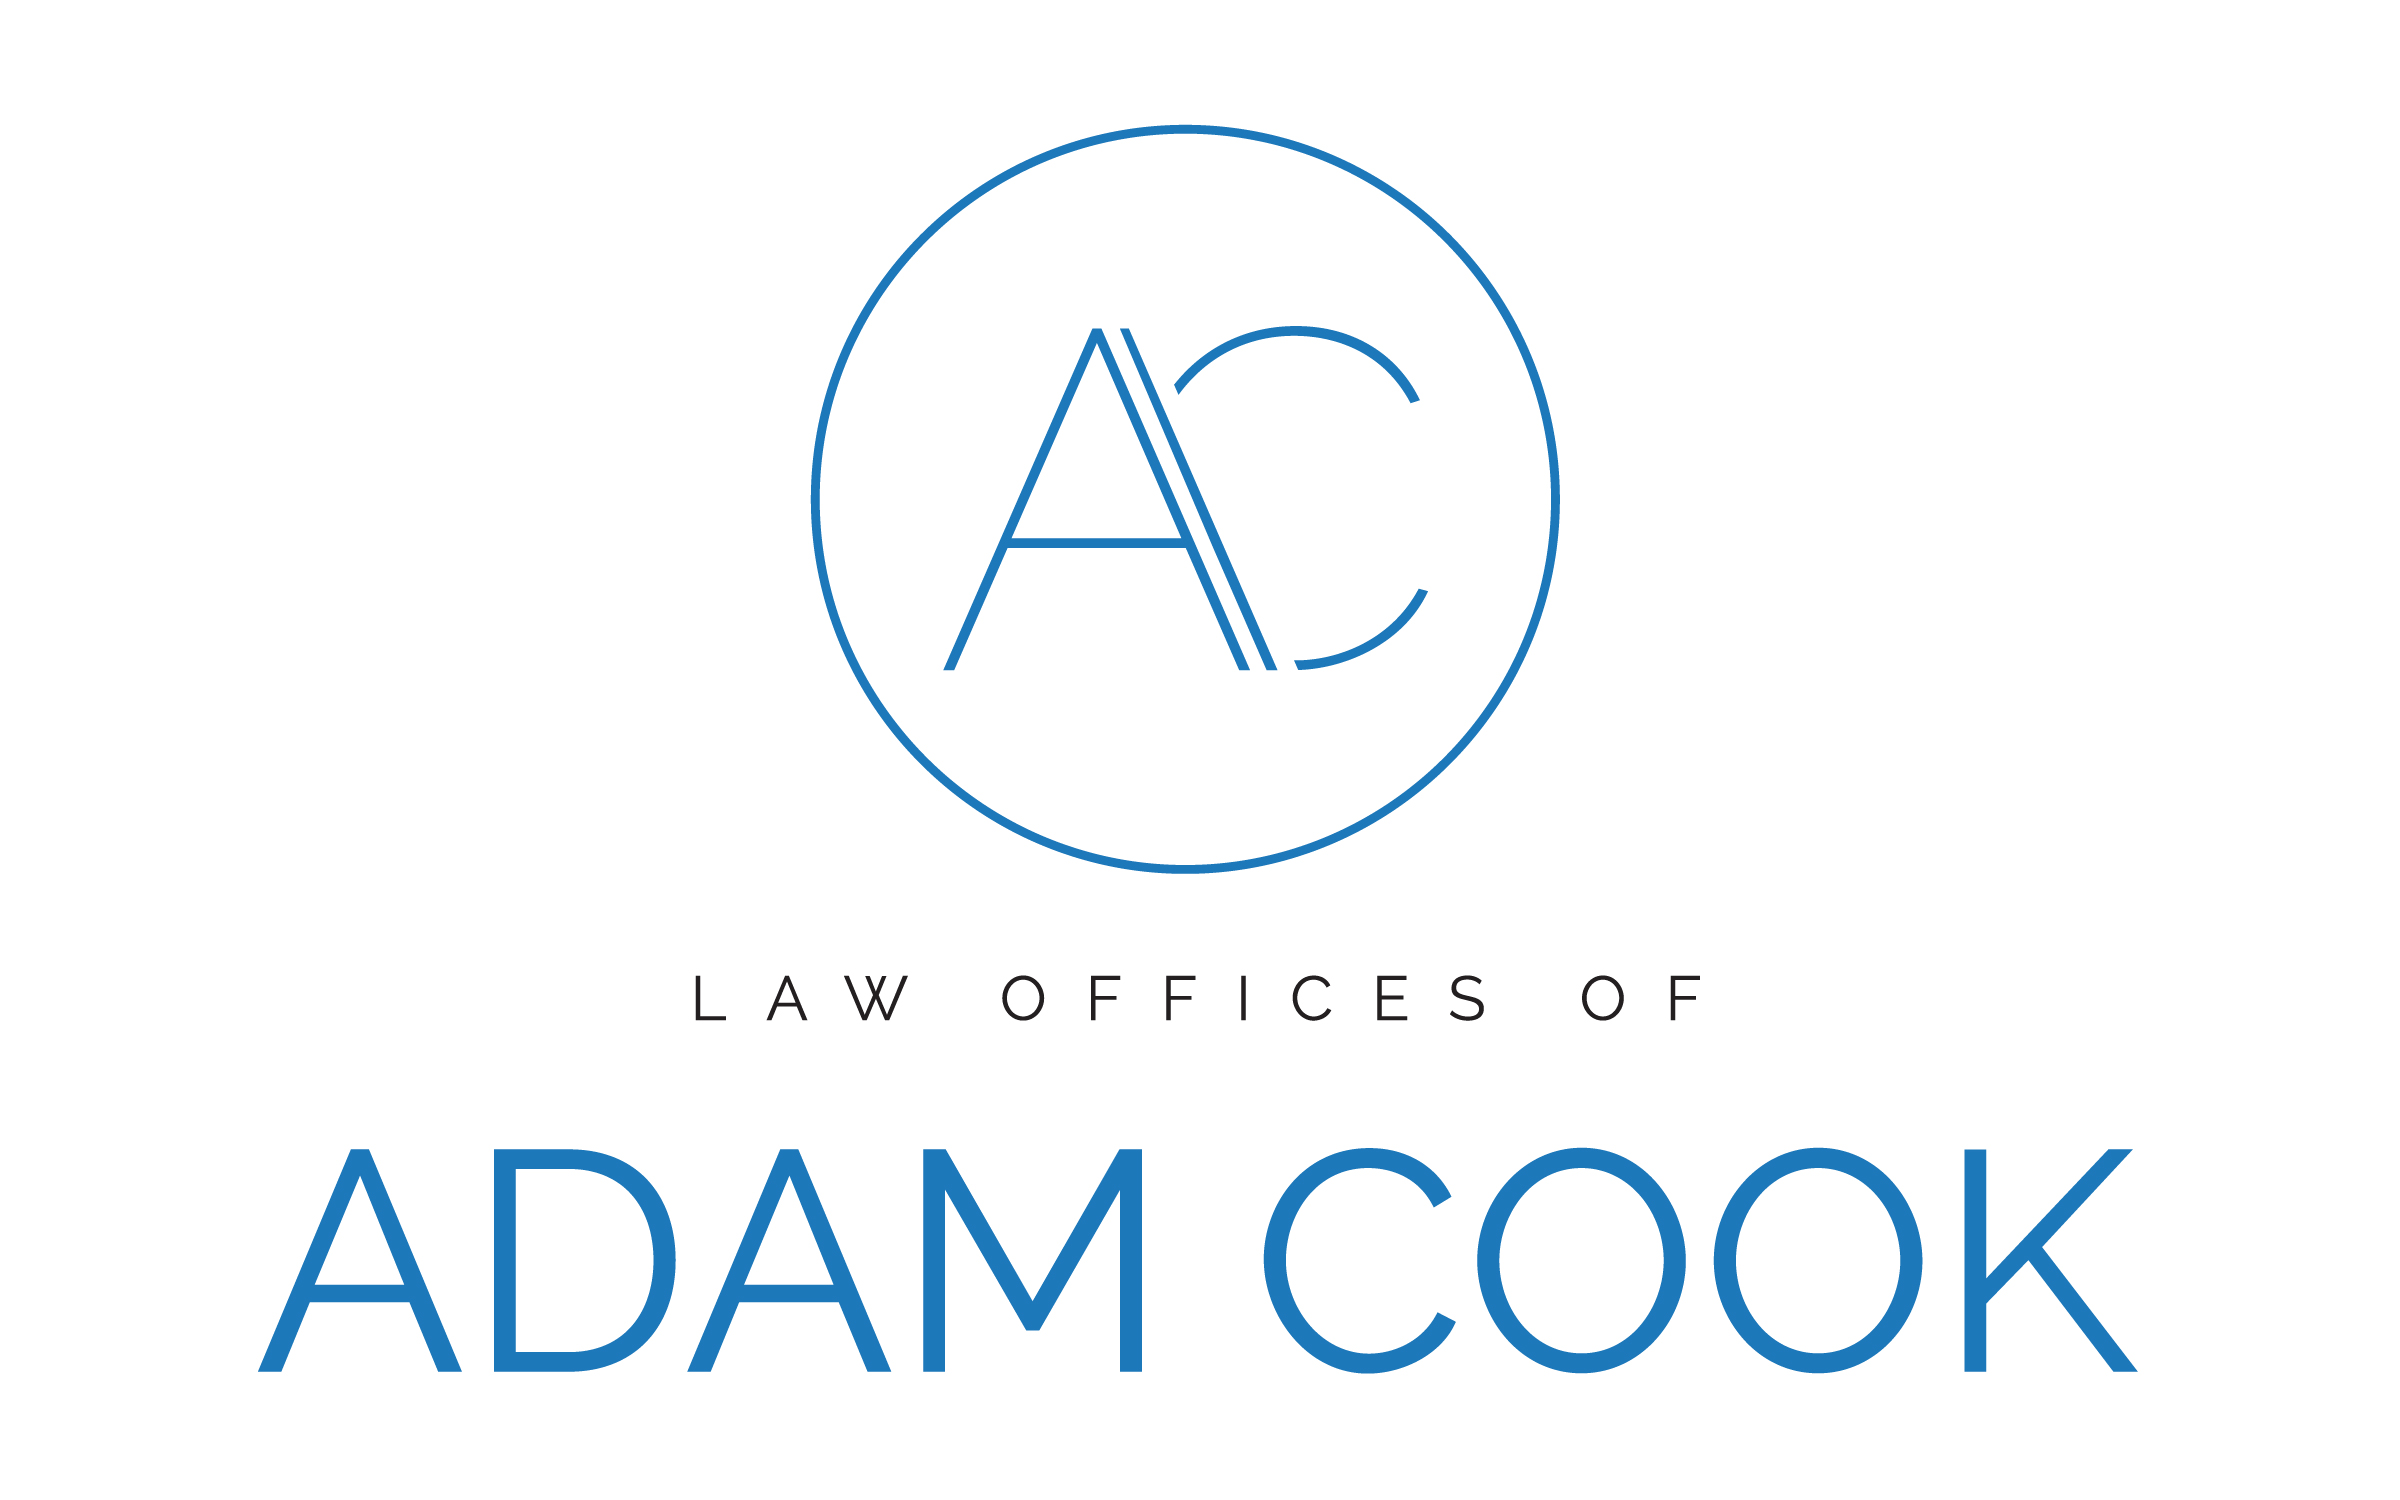 Law Offices of Adam Cook